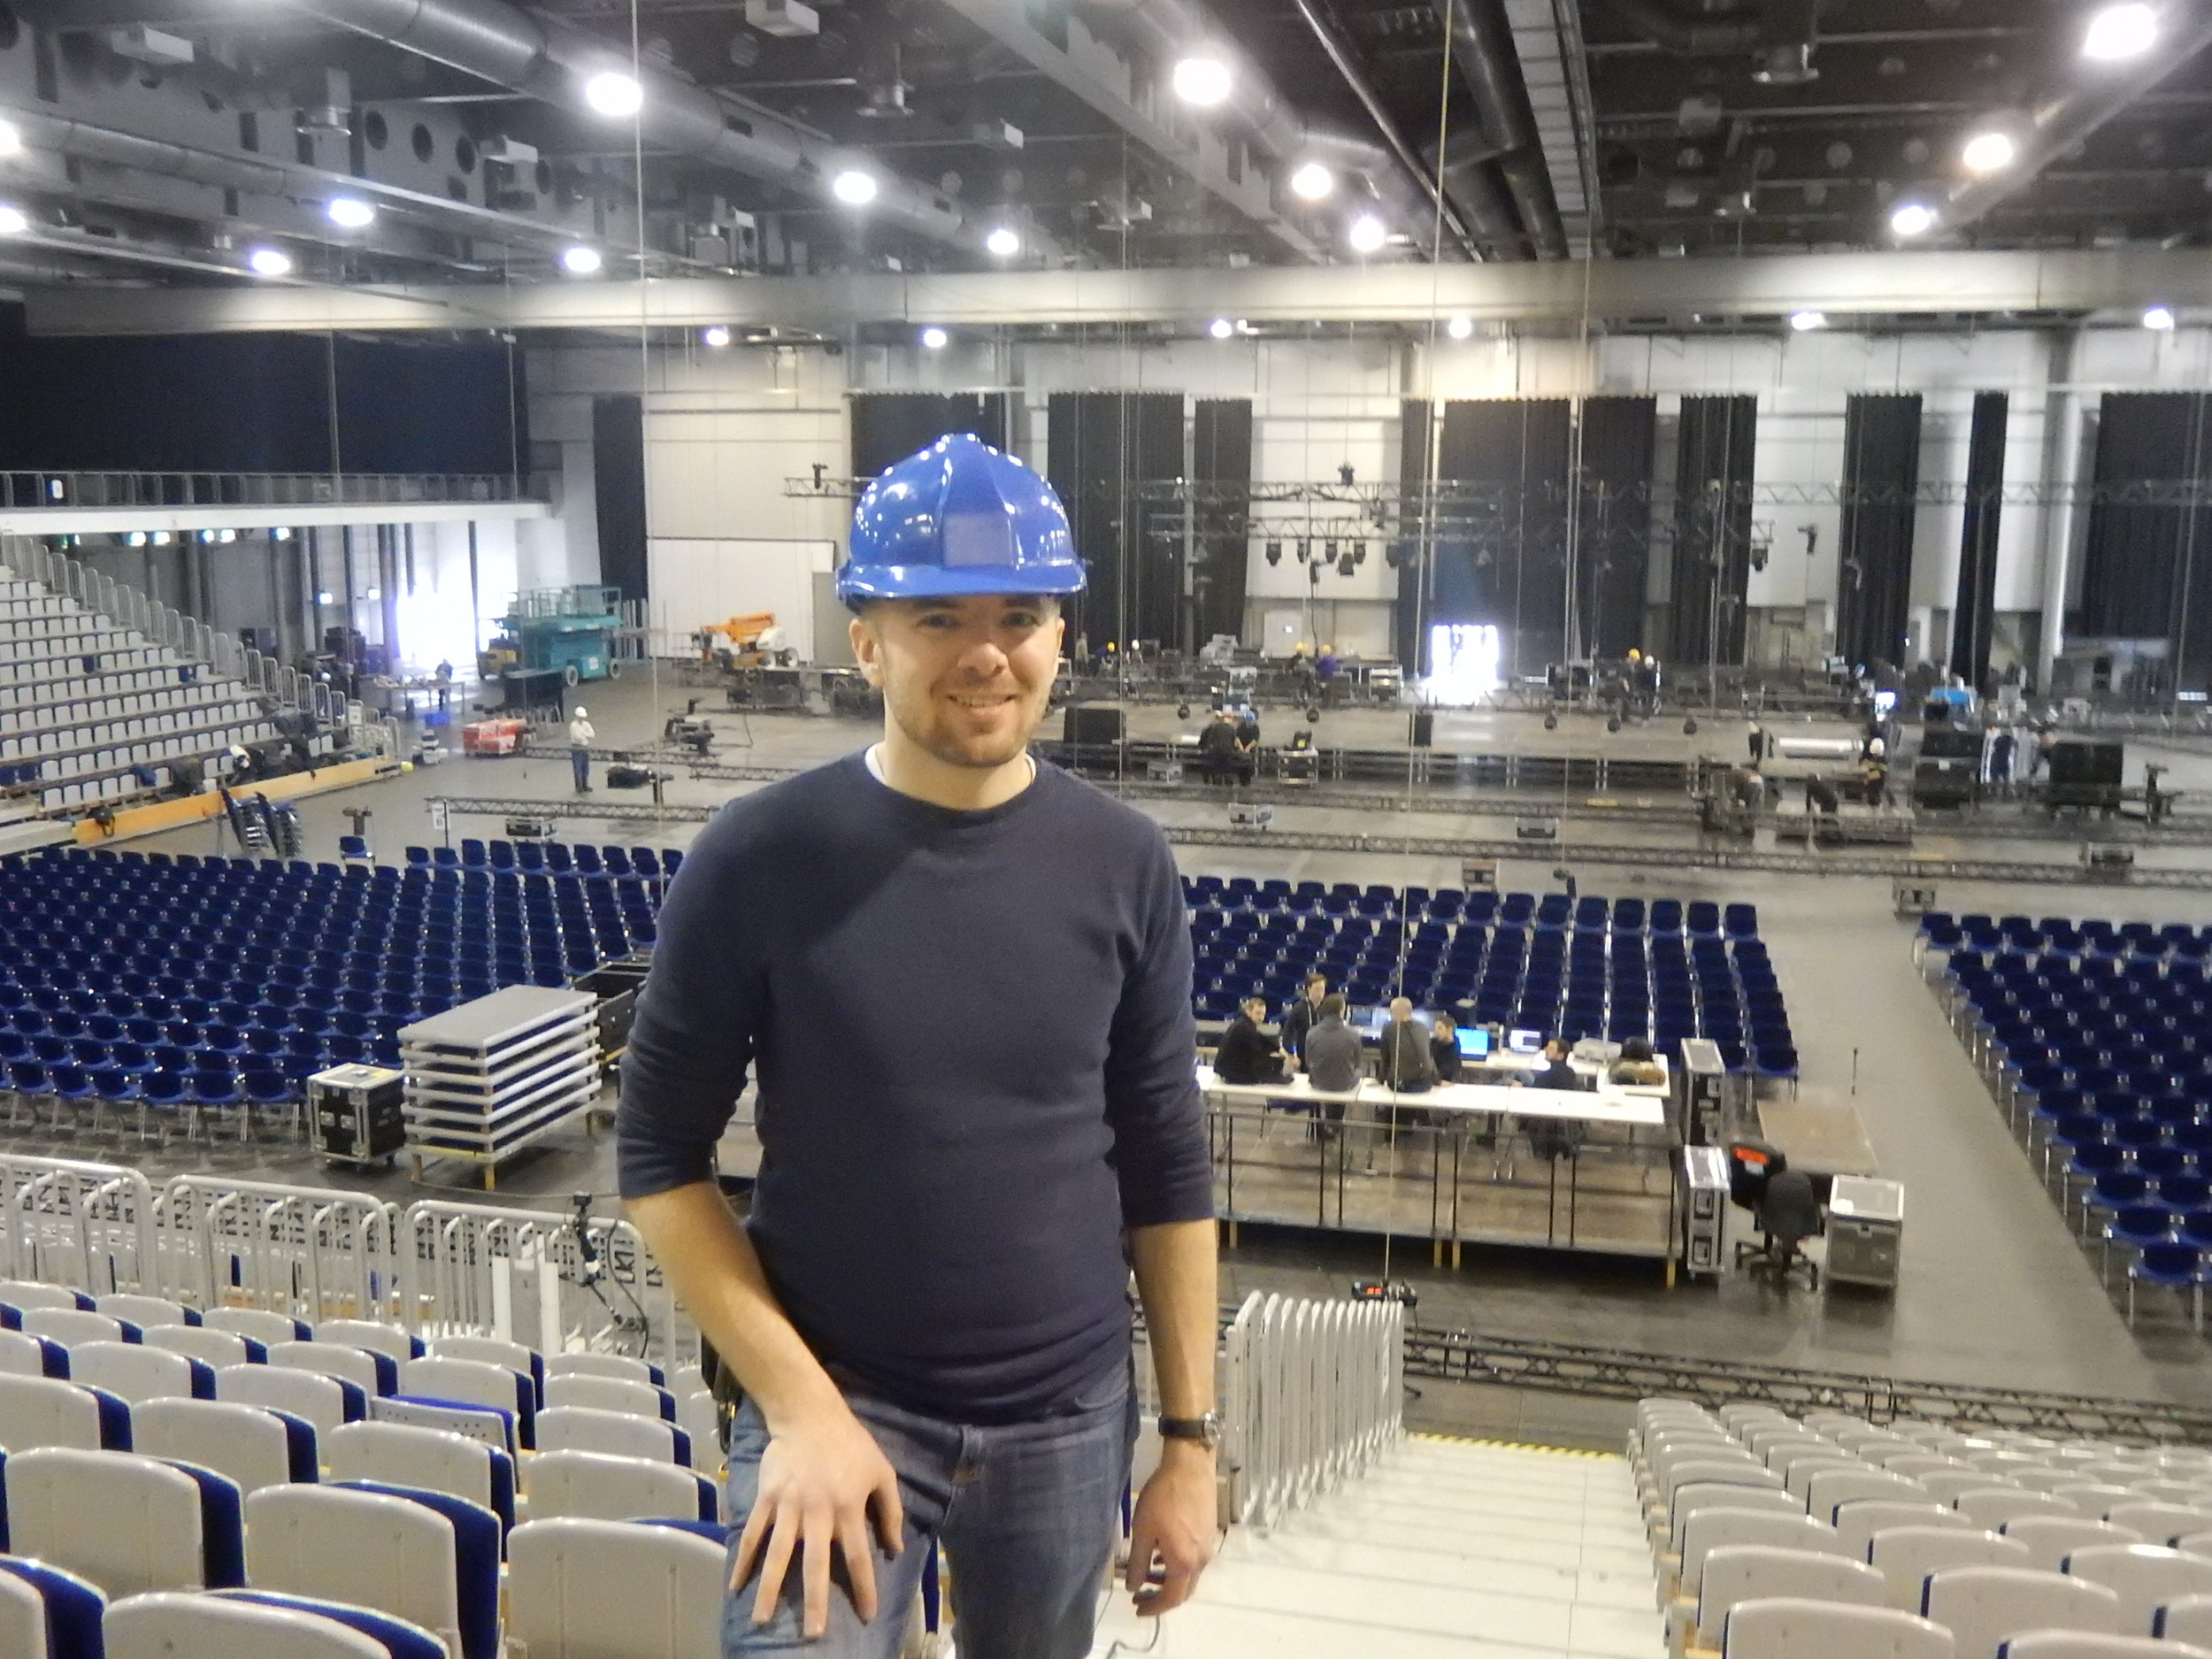 Hard at work building a stage in Erfurt, Germany